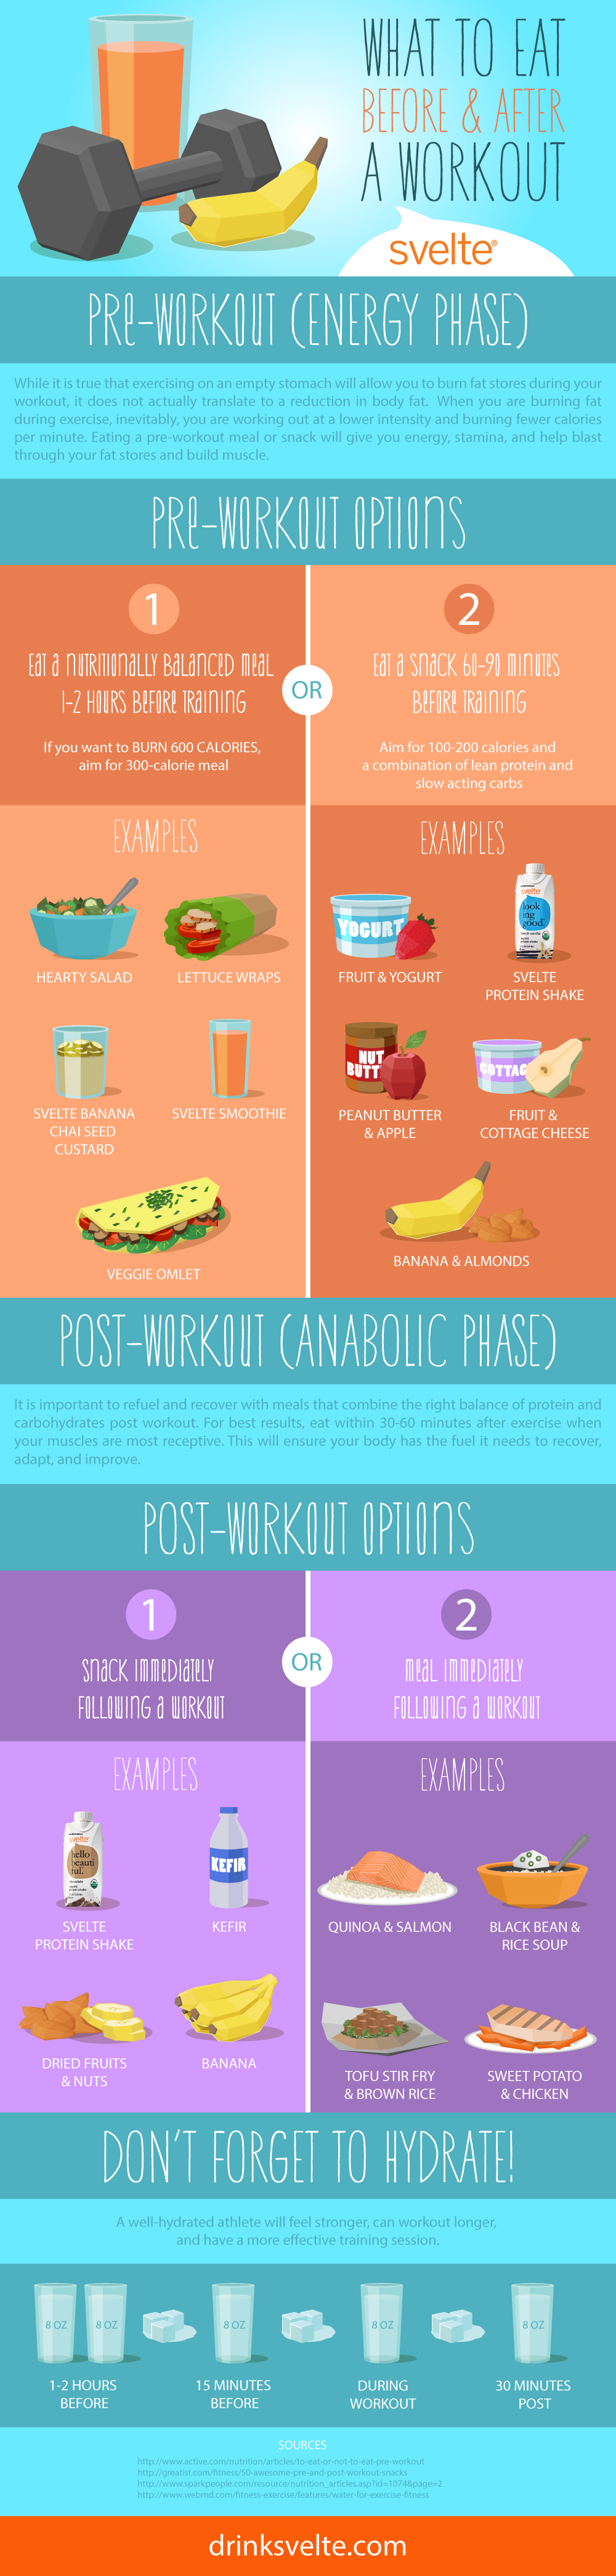 Your Best Pre- And Post-Workout Nutritional Strategies Infographic